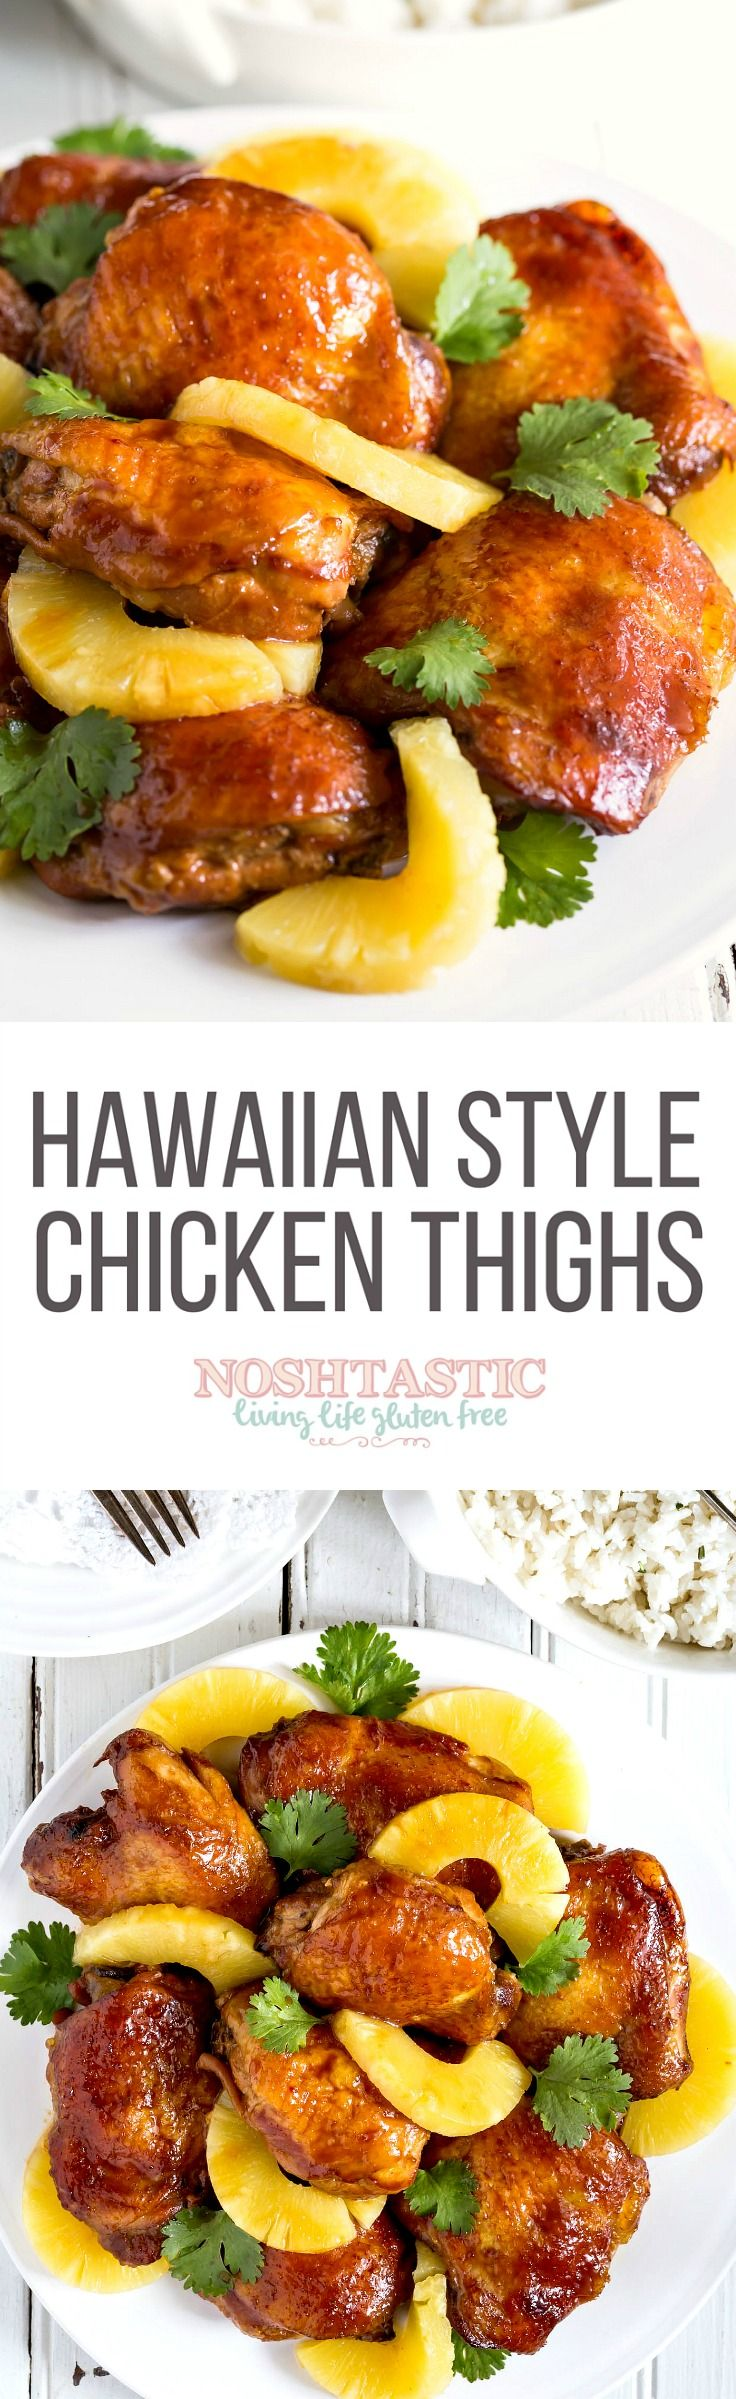 A simply gorgeous, sticky, tasty, Easy Gluten Free Hawaiian Chicken Thighs…